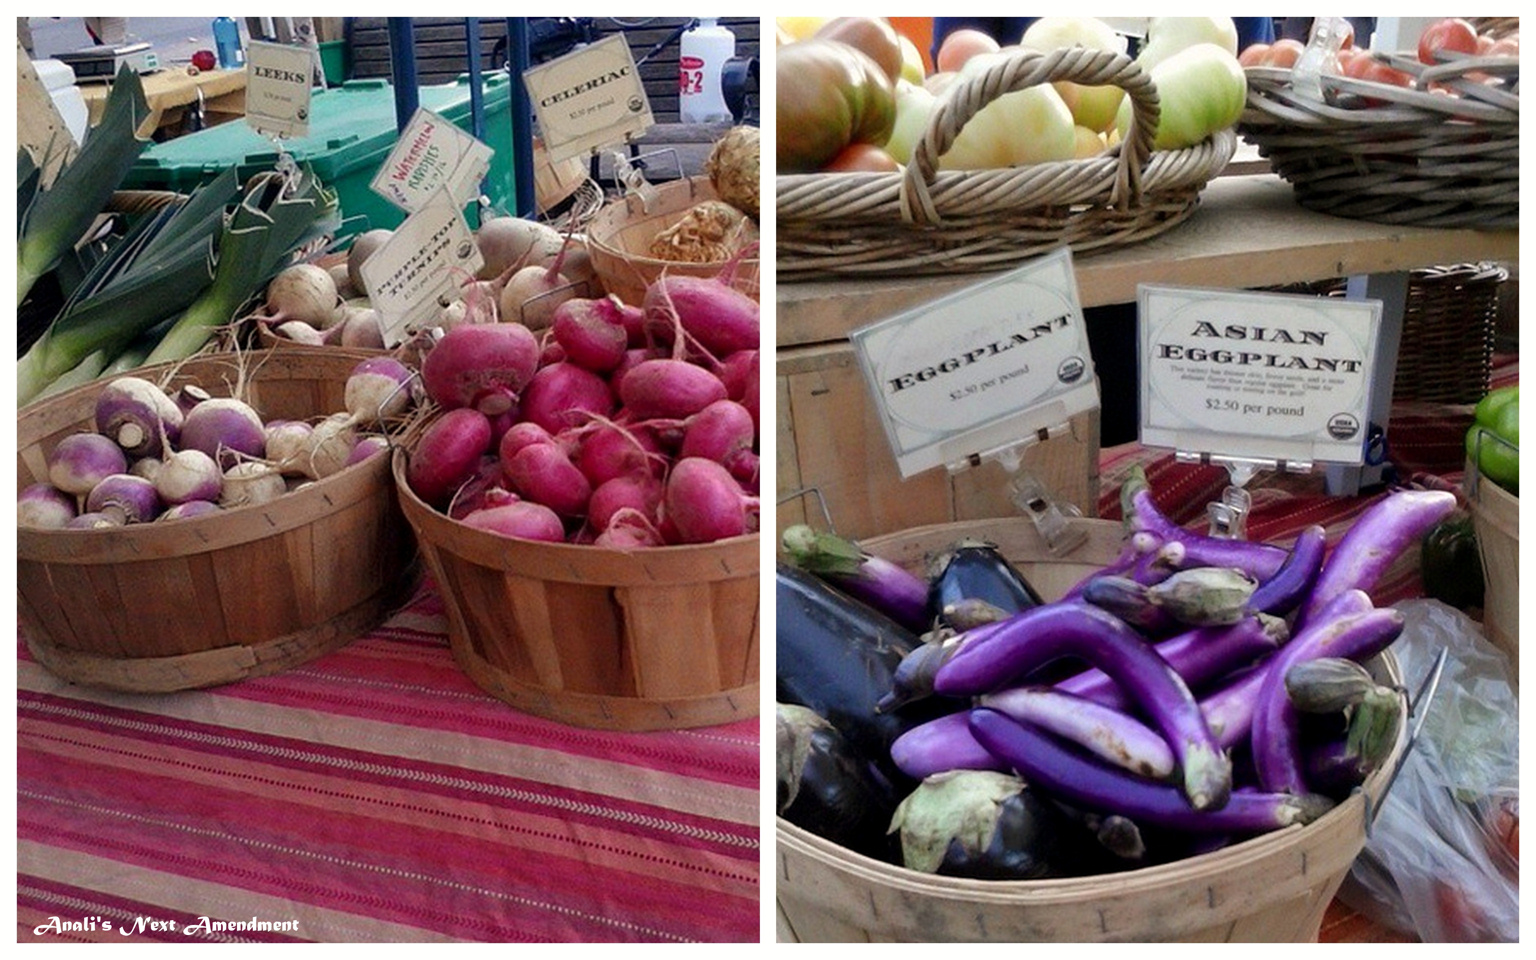 Copley Square farmers market vegetables